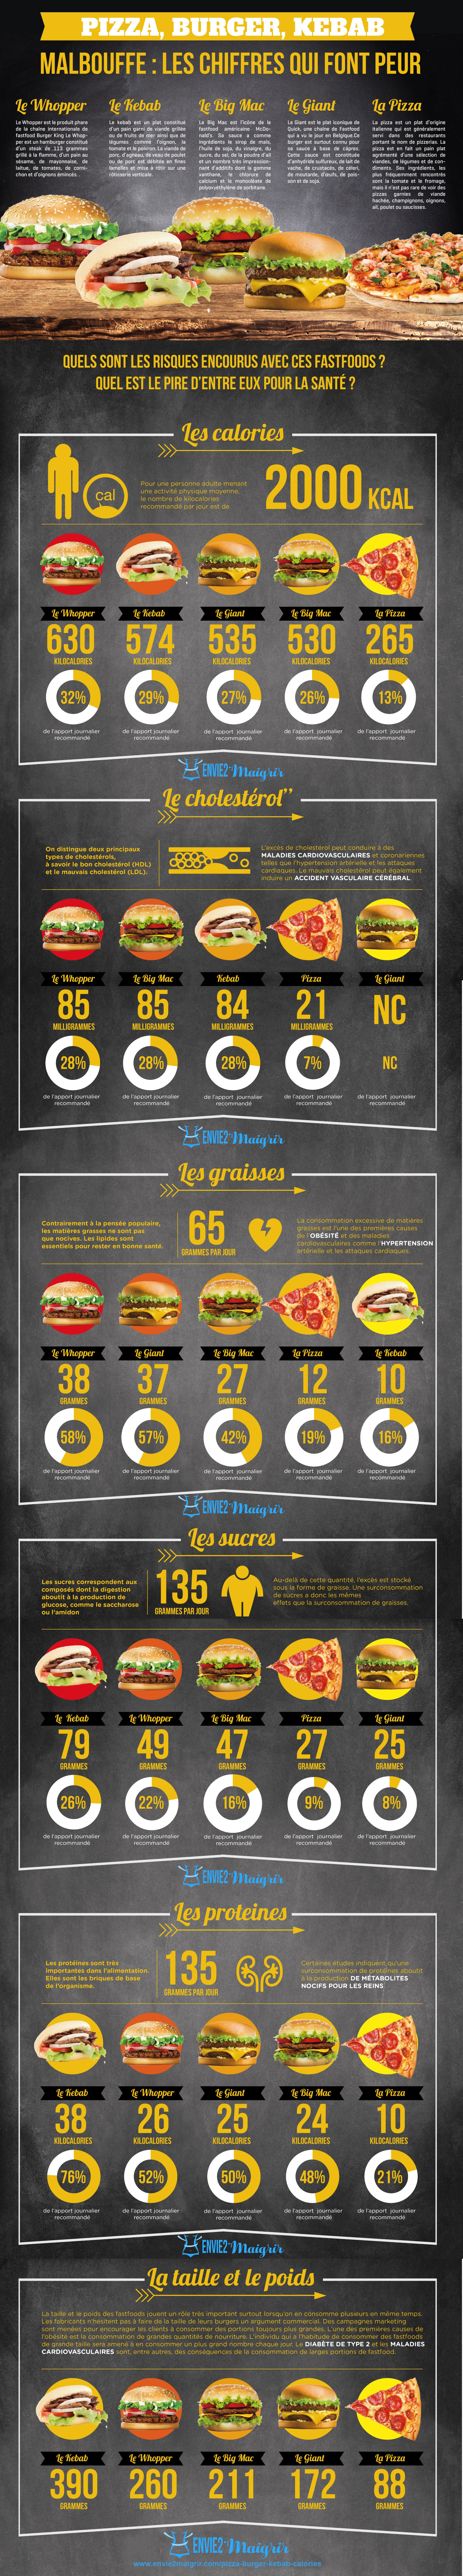 Infographie-malbouffe